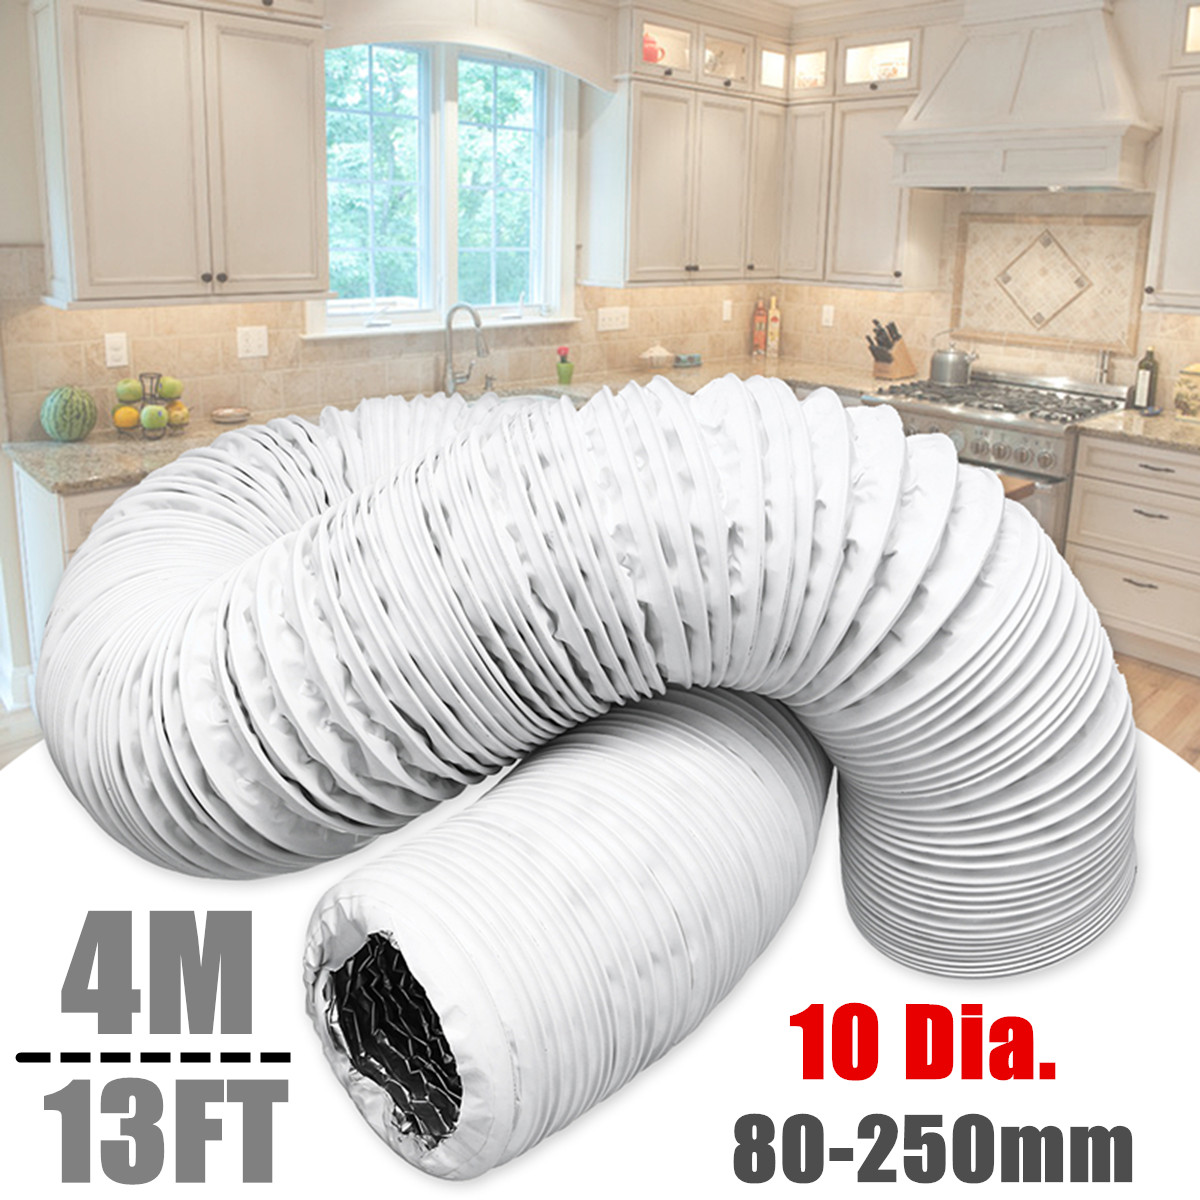 4M 80-250mm Diameter Aluminum Foil Duct Hose Pipes Fittings Kitchen Exhaust Inline Fan Vent Hoses Ventilation Air Vent Tube Part